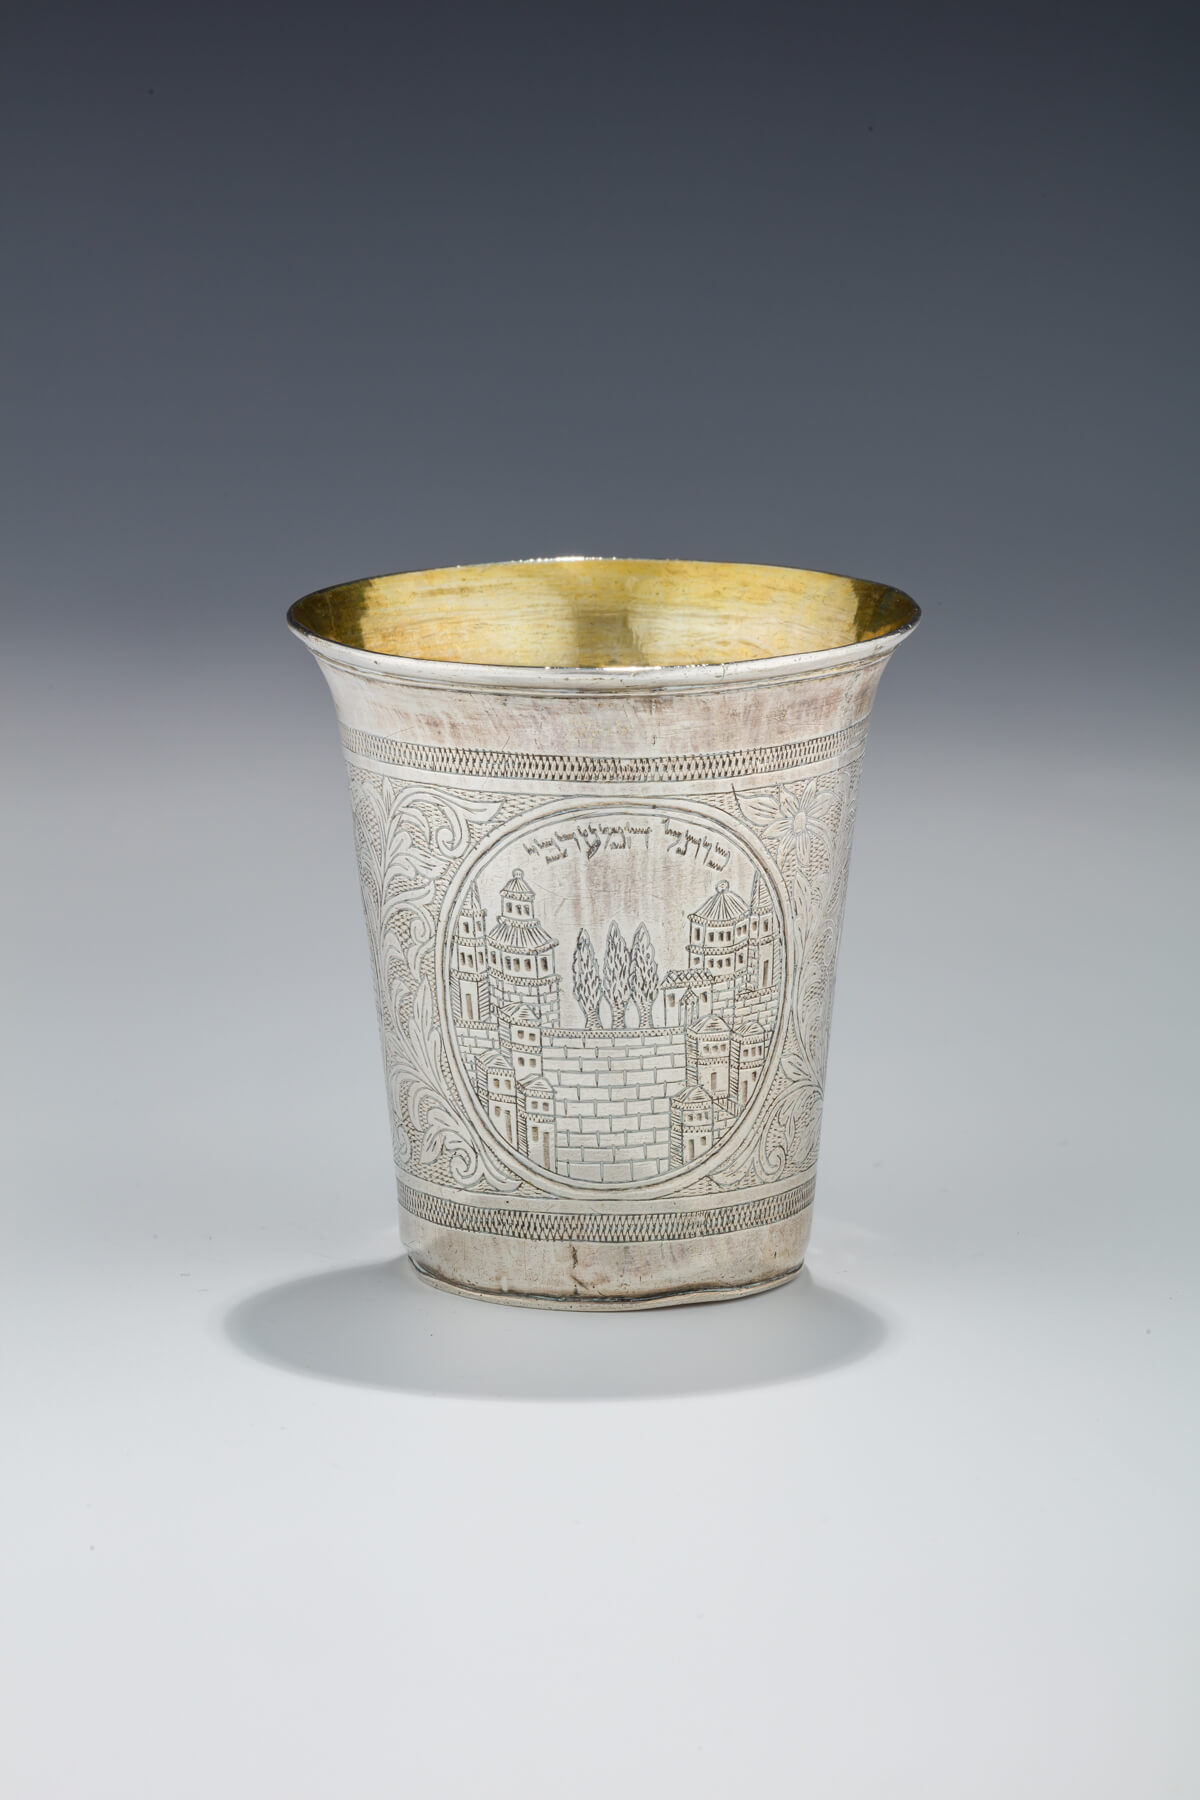 035. A Large Silver Kiddush Beaker